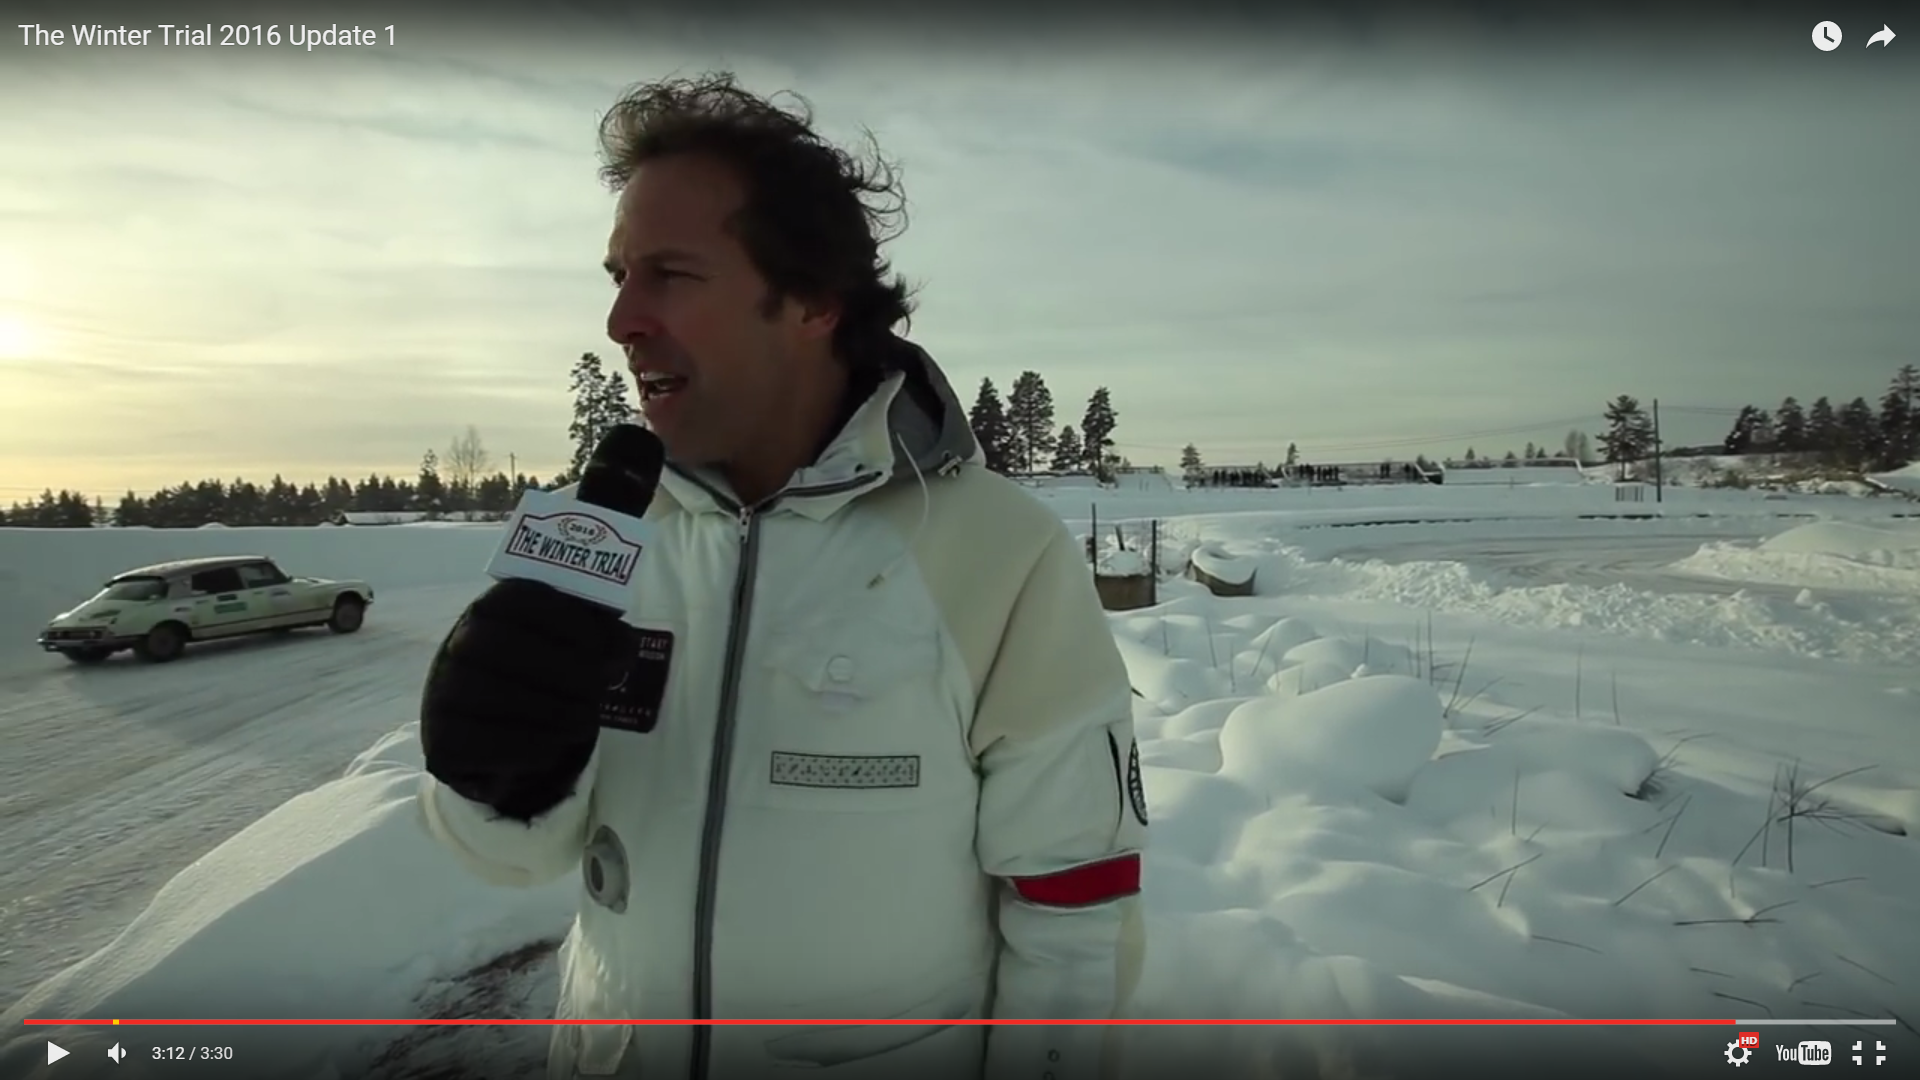 Werner Budding. wintertrial 2016.png